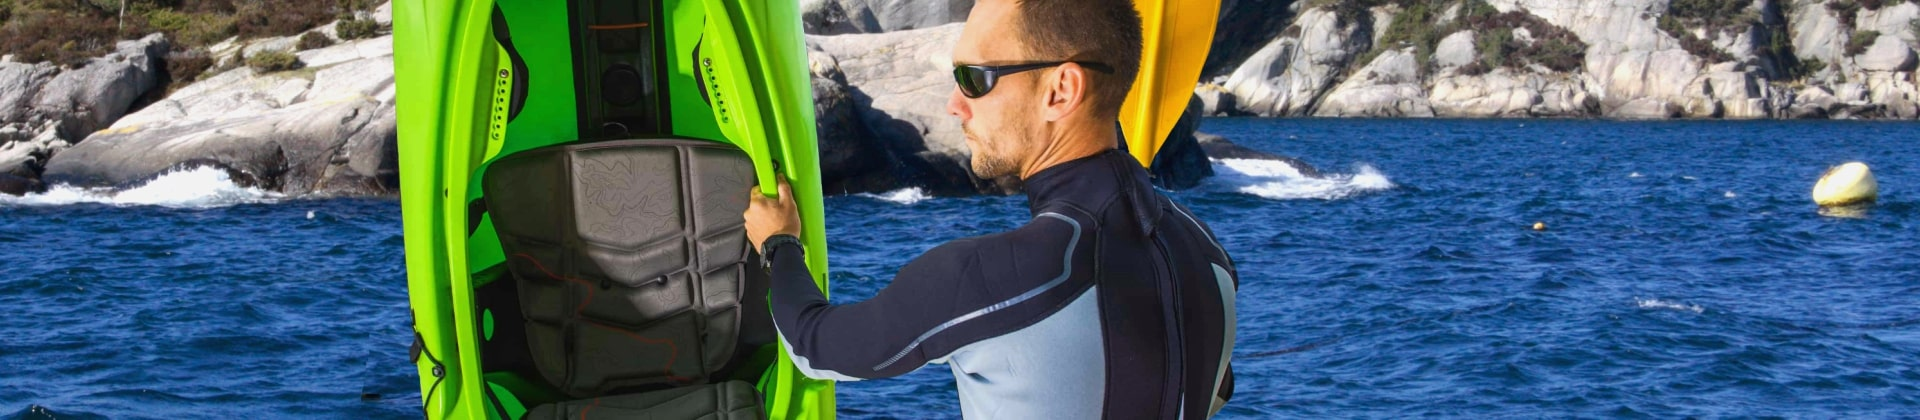 Best Wetsuits for Kayaking Reviewed in Detail